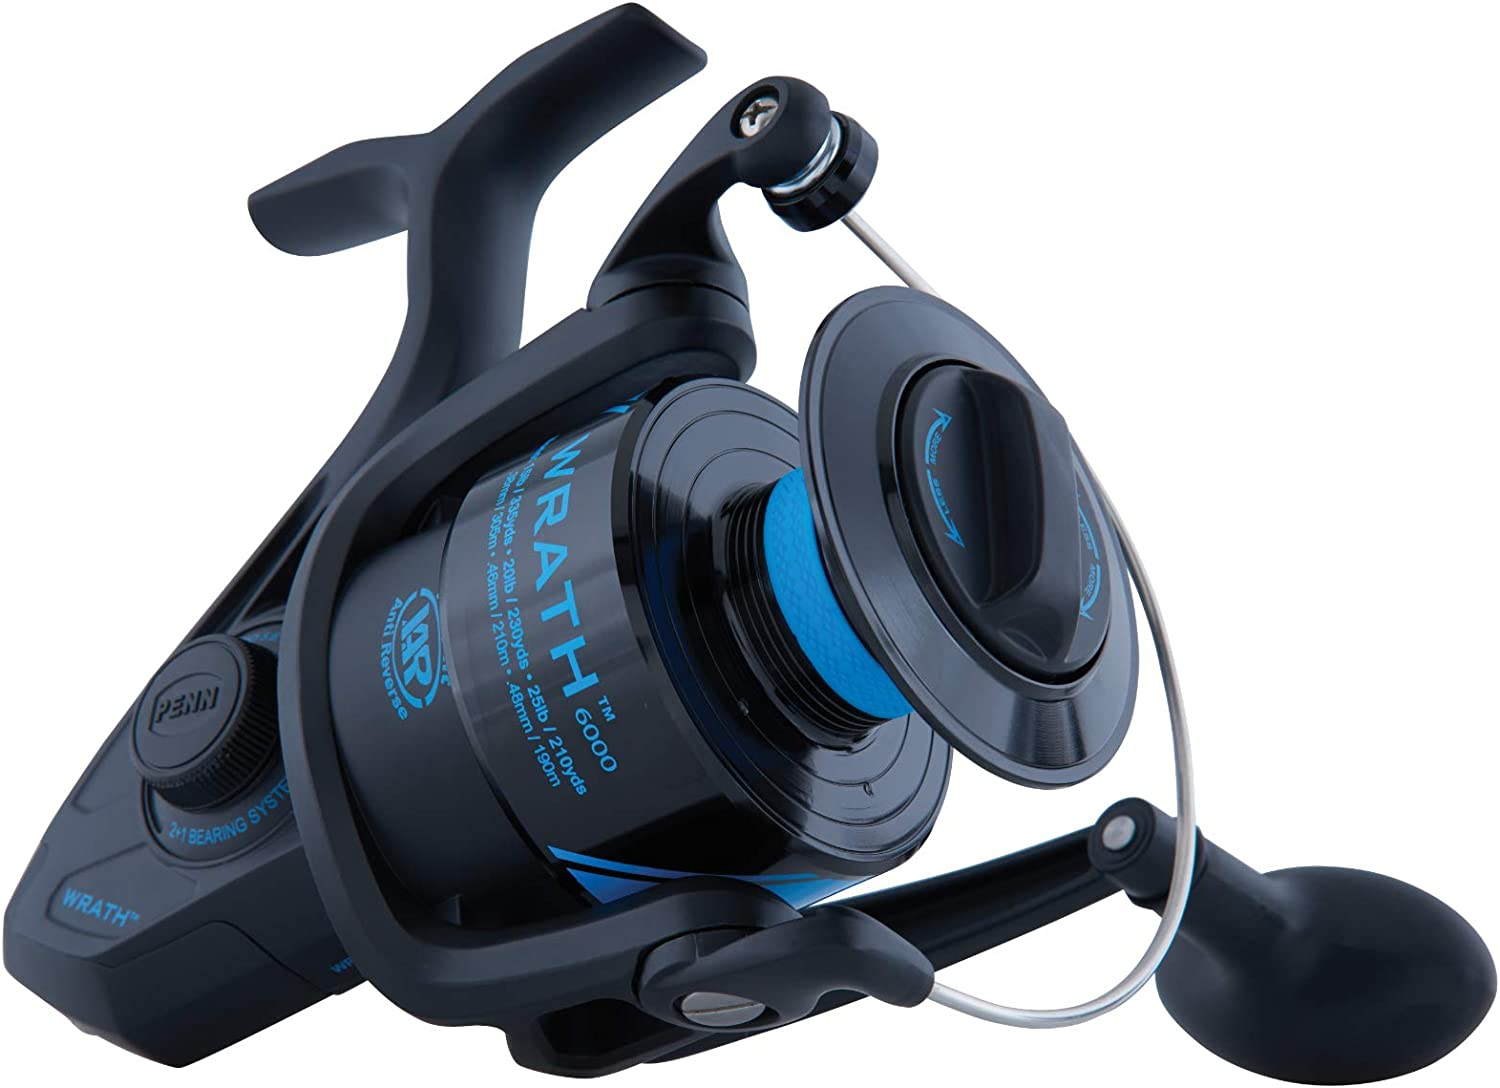 Penn Wrath Spinning Fishing Reel WRTH 6000 C